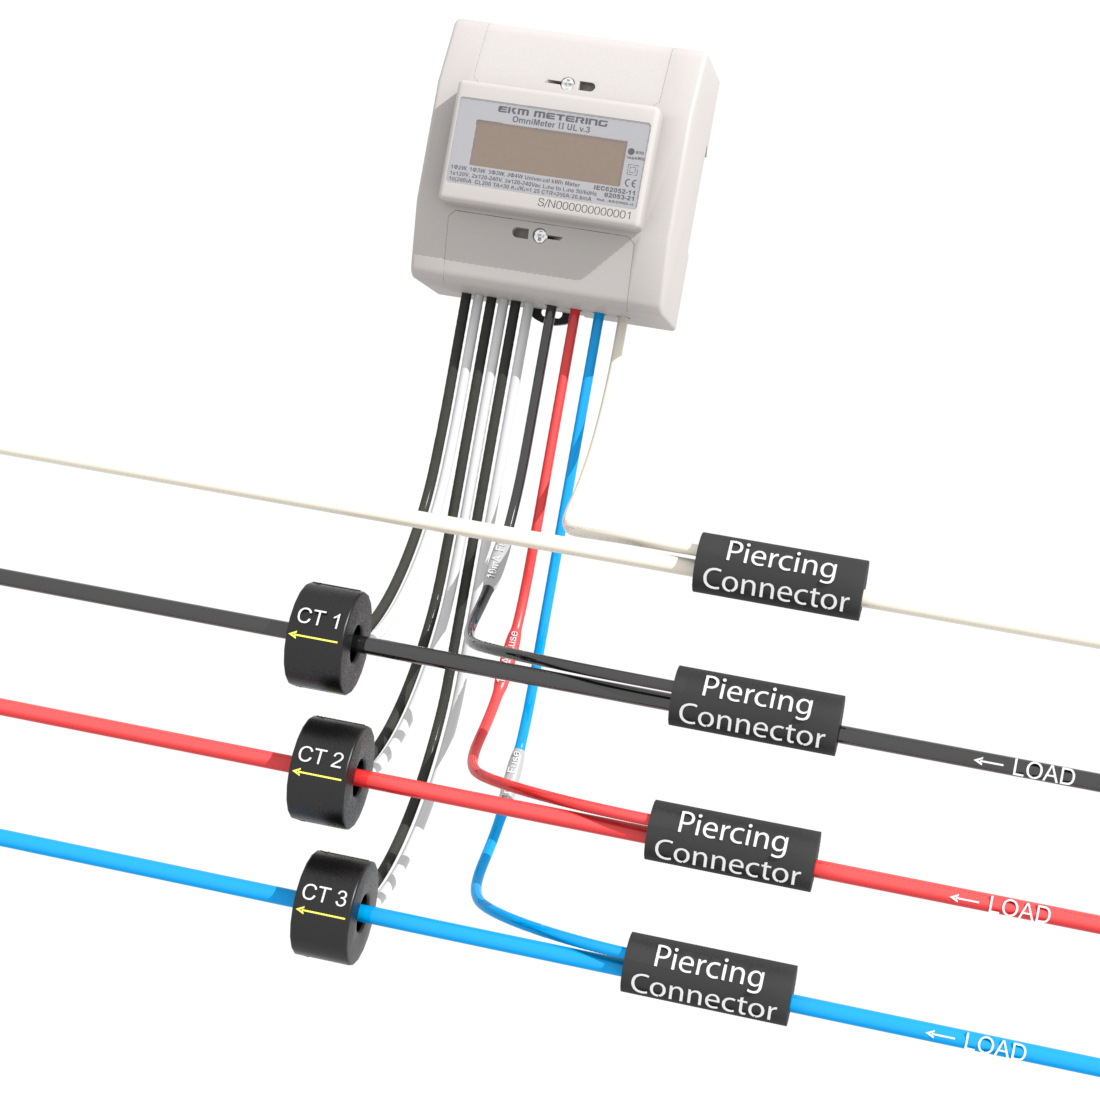 small resolution of 3 phase 4 wire metering up to 480v ekm support desk 480v 3 phase wiring diagram 480v 3 phase wiring